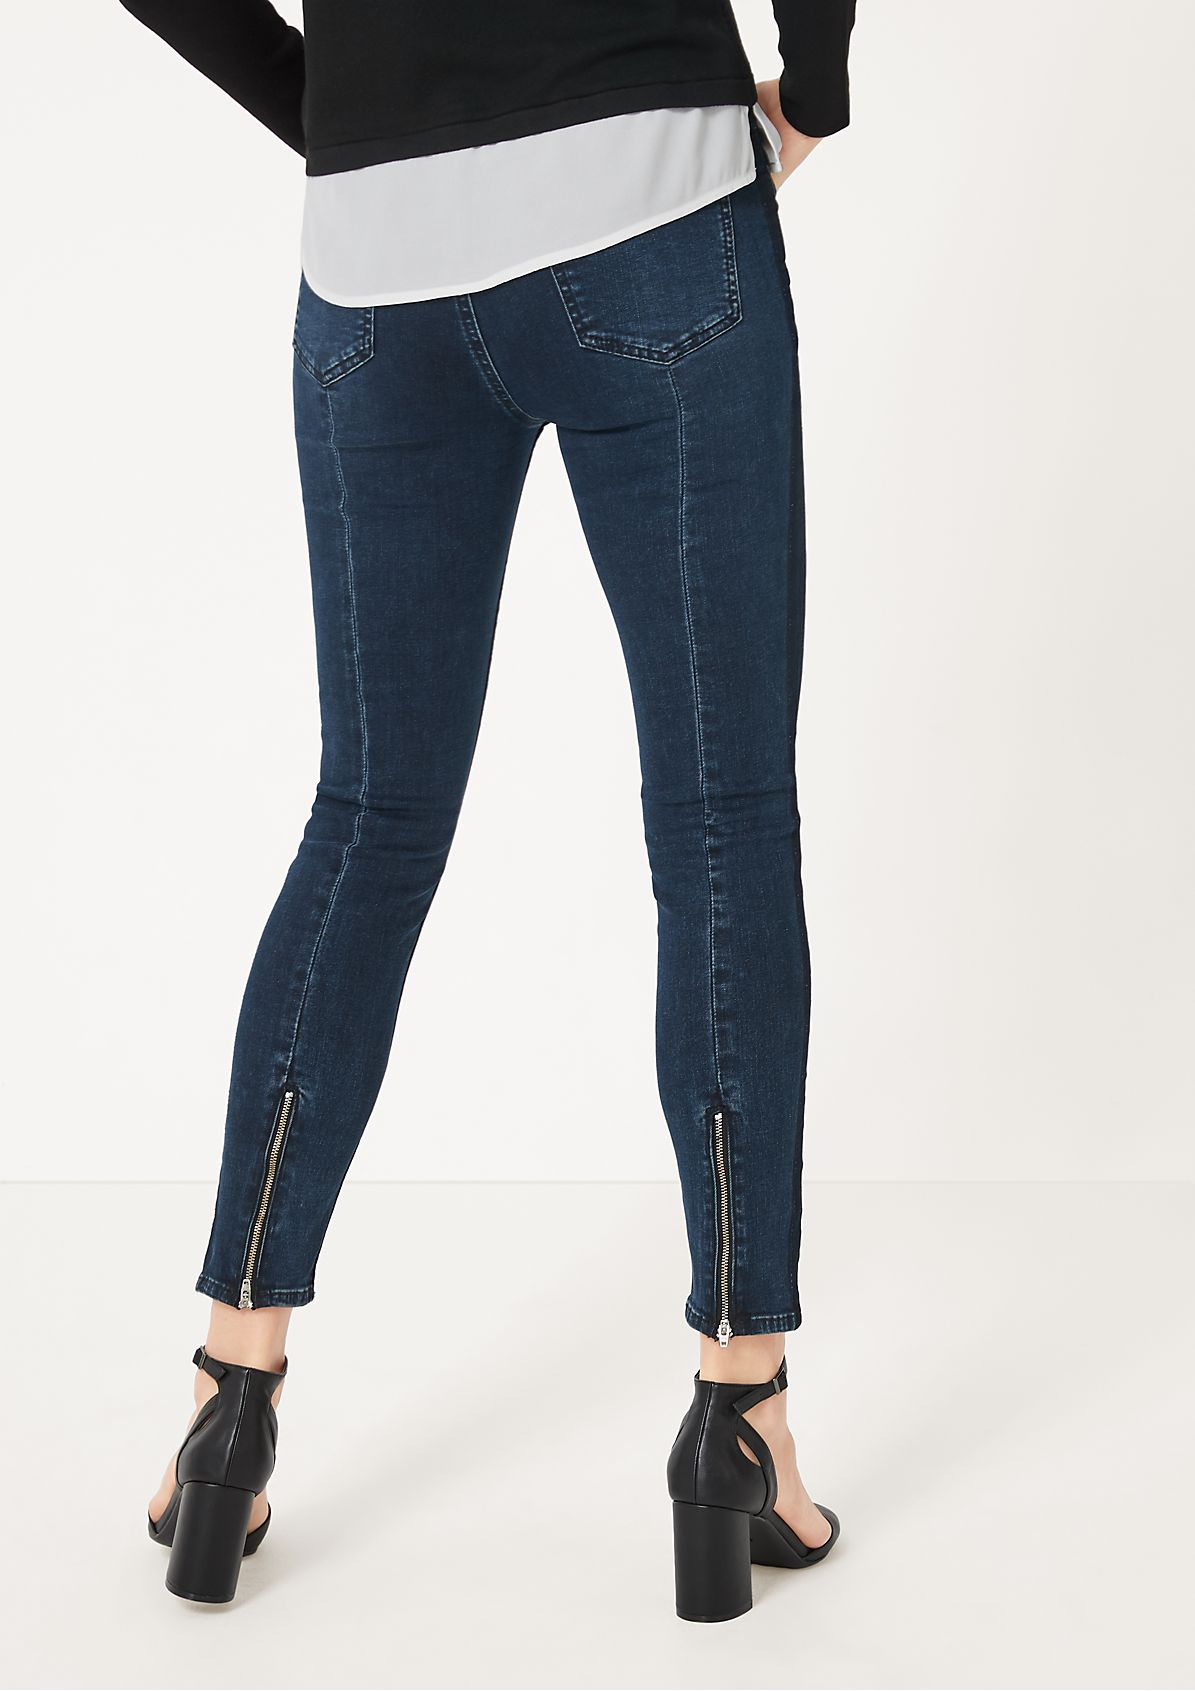 Jeans in Used-Waschung